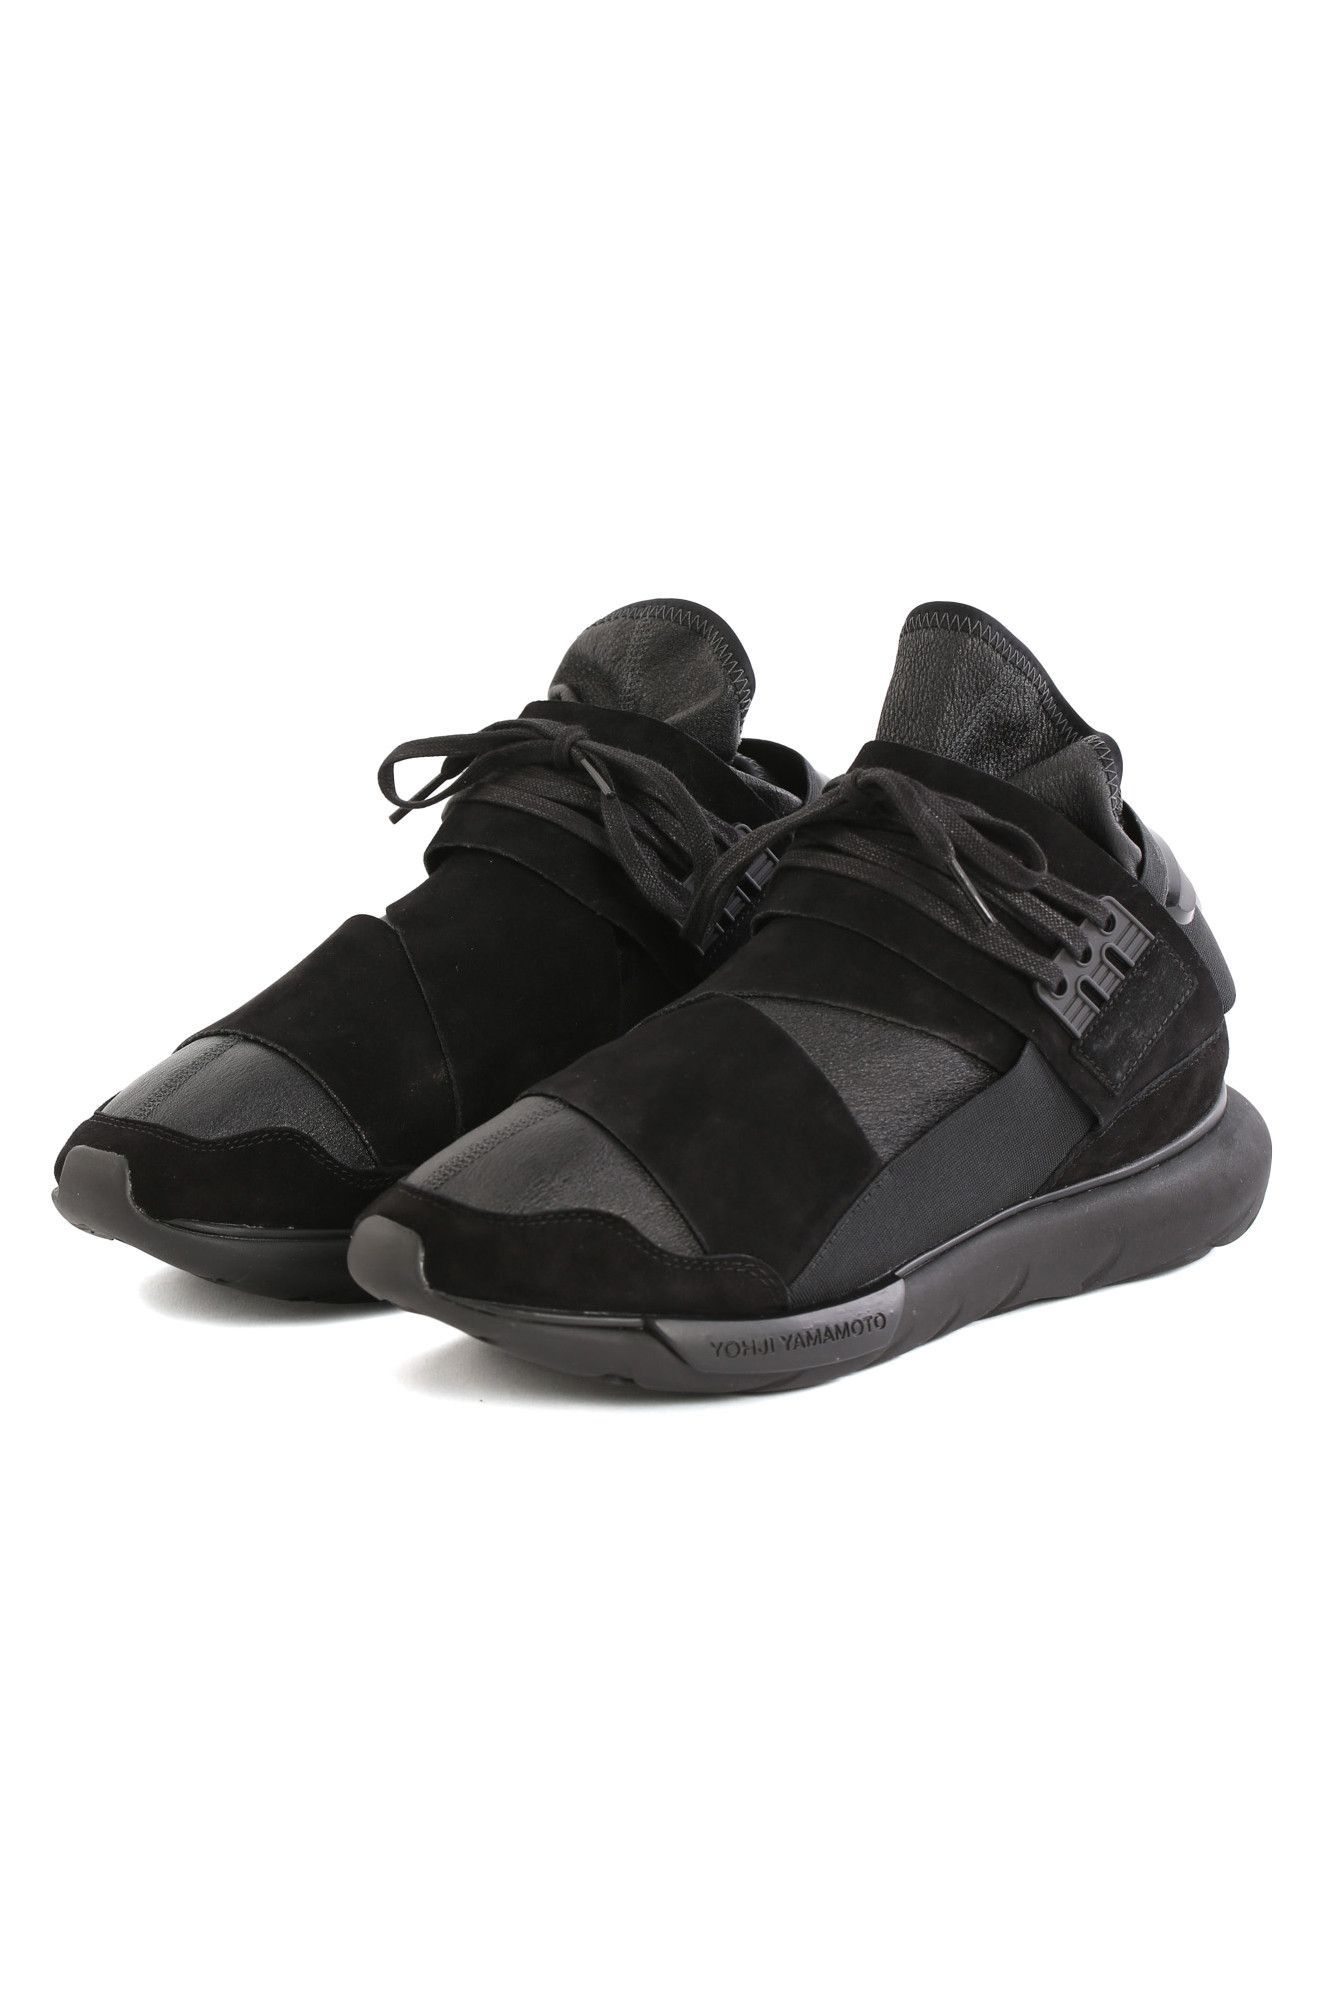 The Qasa High Leather from Y-3, a collaboration between Yohji Yamamoto and adidas. Details Black premium leather. Y-3 logo at back. The new silhouette of these sneakers combines the iconic Y-3 suede s